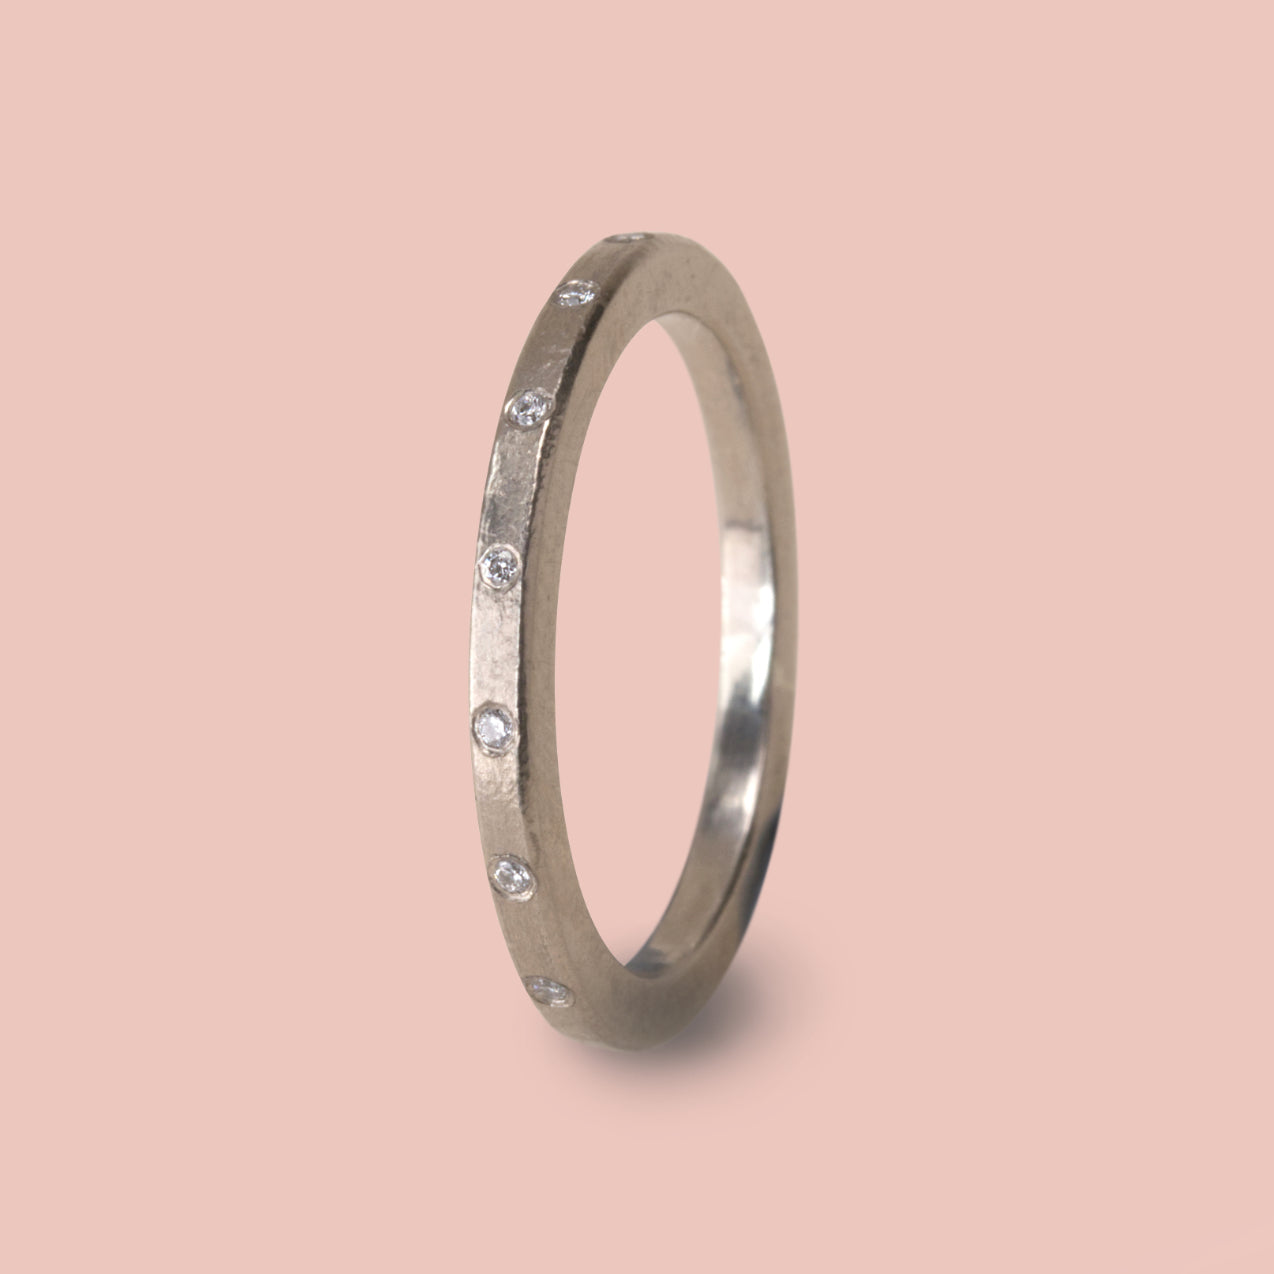 Celestial Ring - White Gold